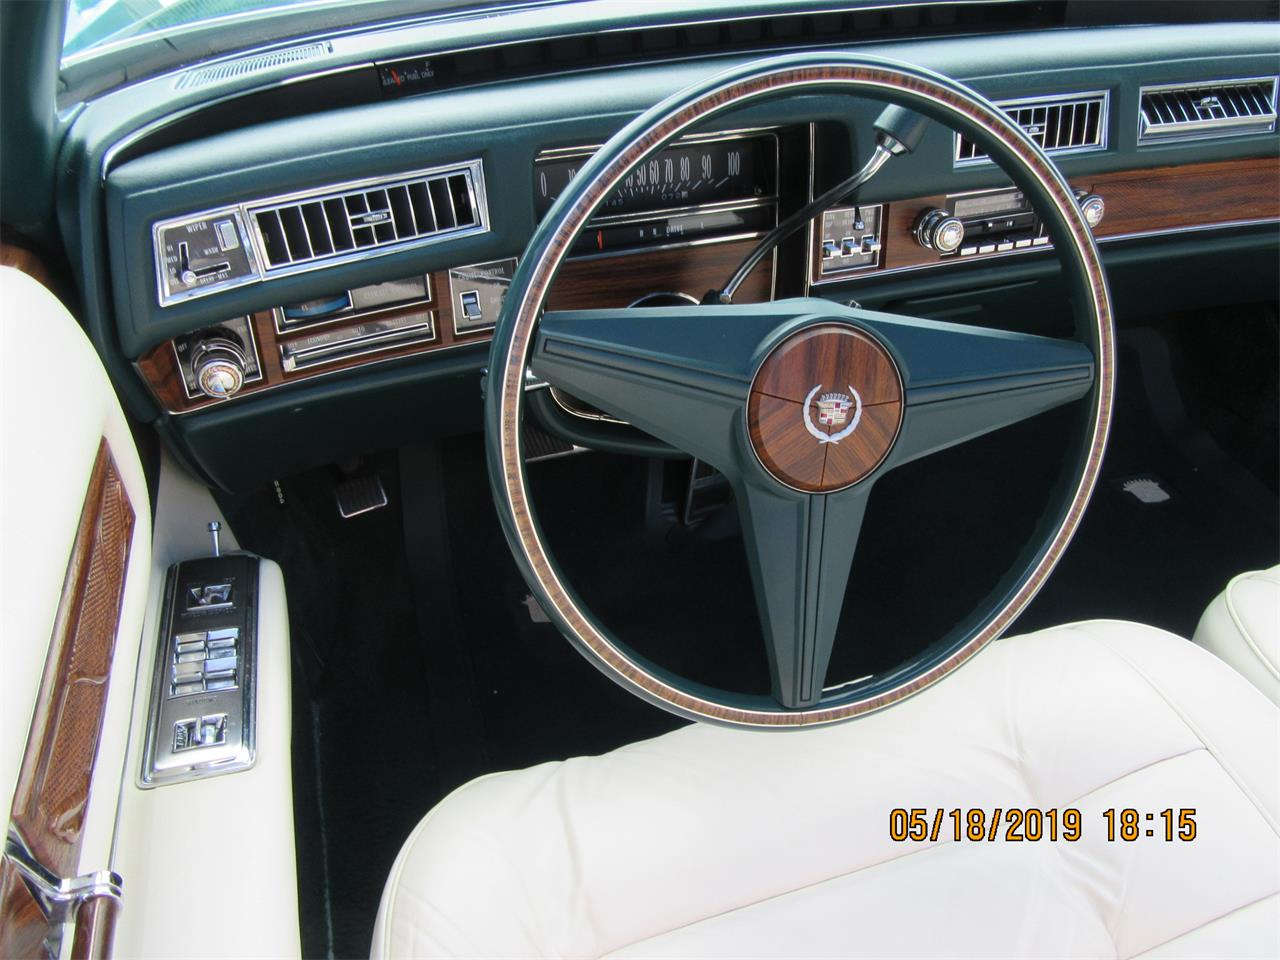 Large Picture of '76 Cadillac Eldorado located in Mill Hall Pennsylvania Auction Vehicle - Q5G8